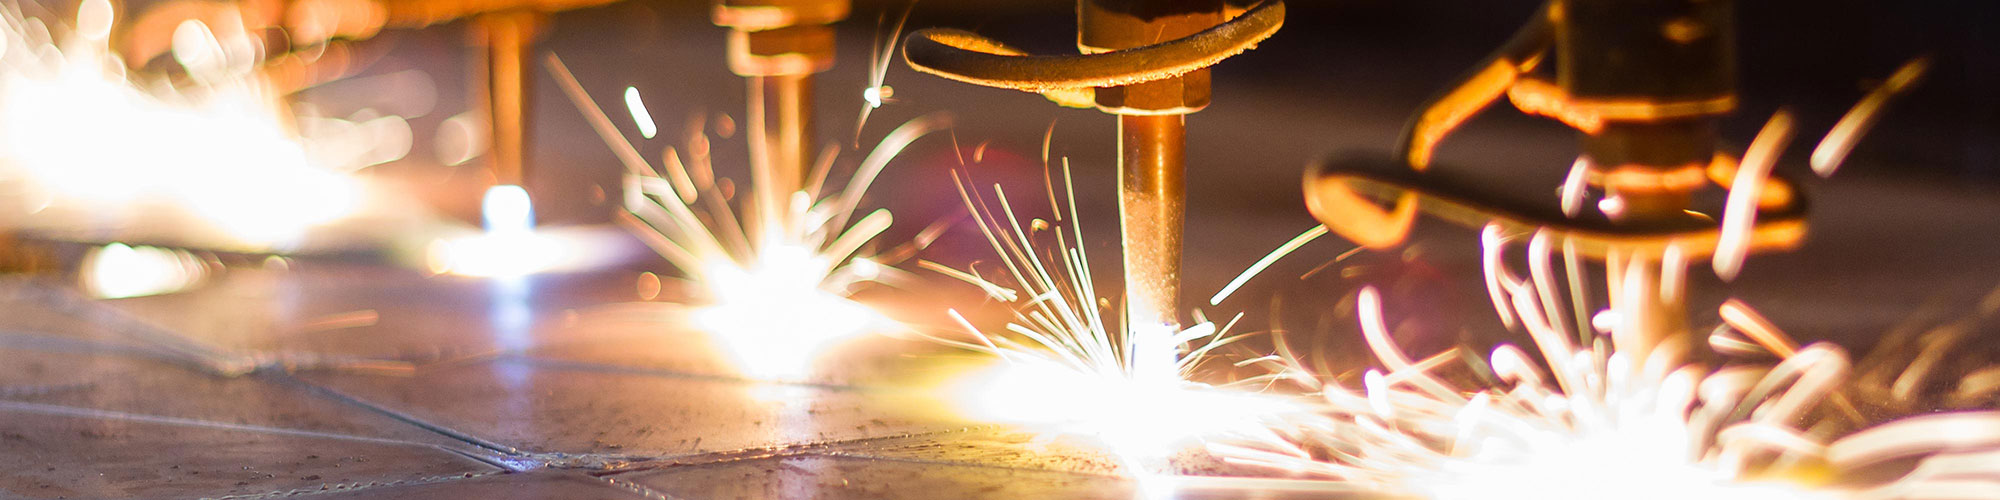 Manufacturing Machines Work with Soldering Sparks